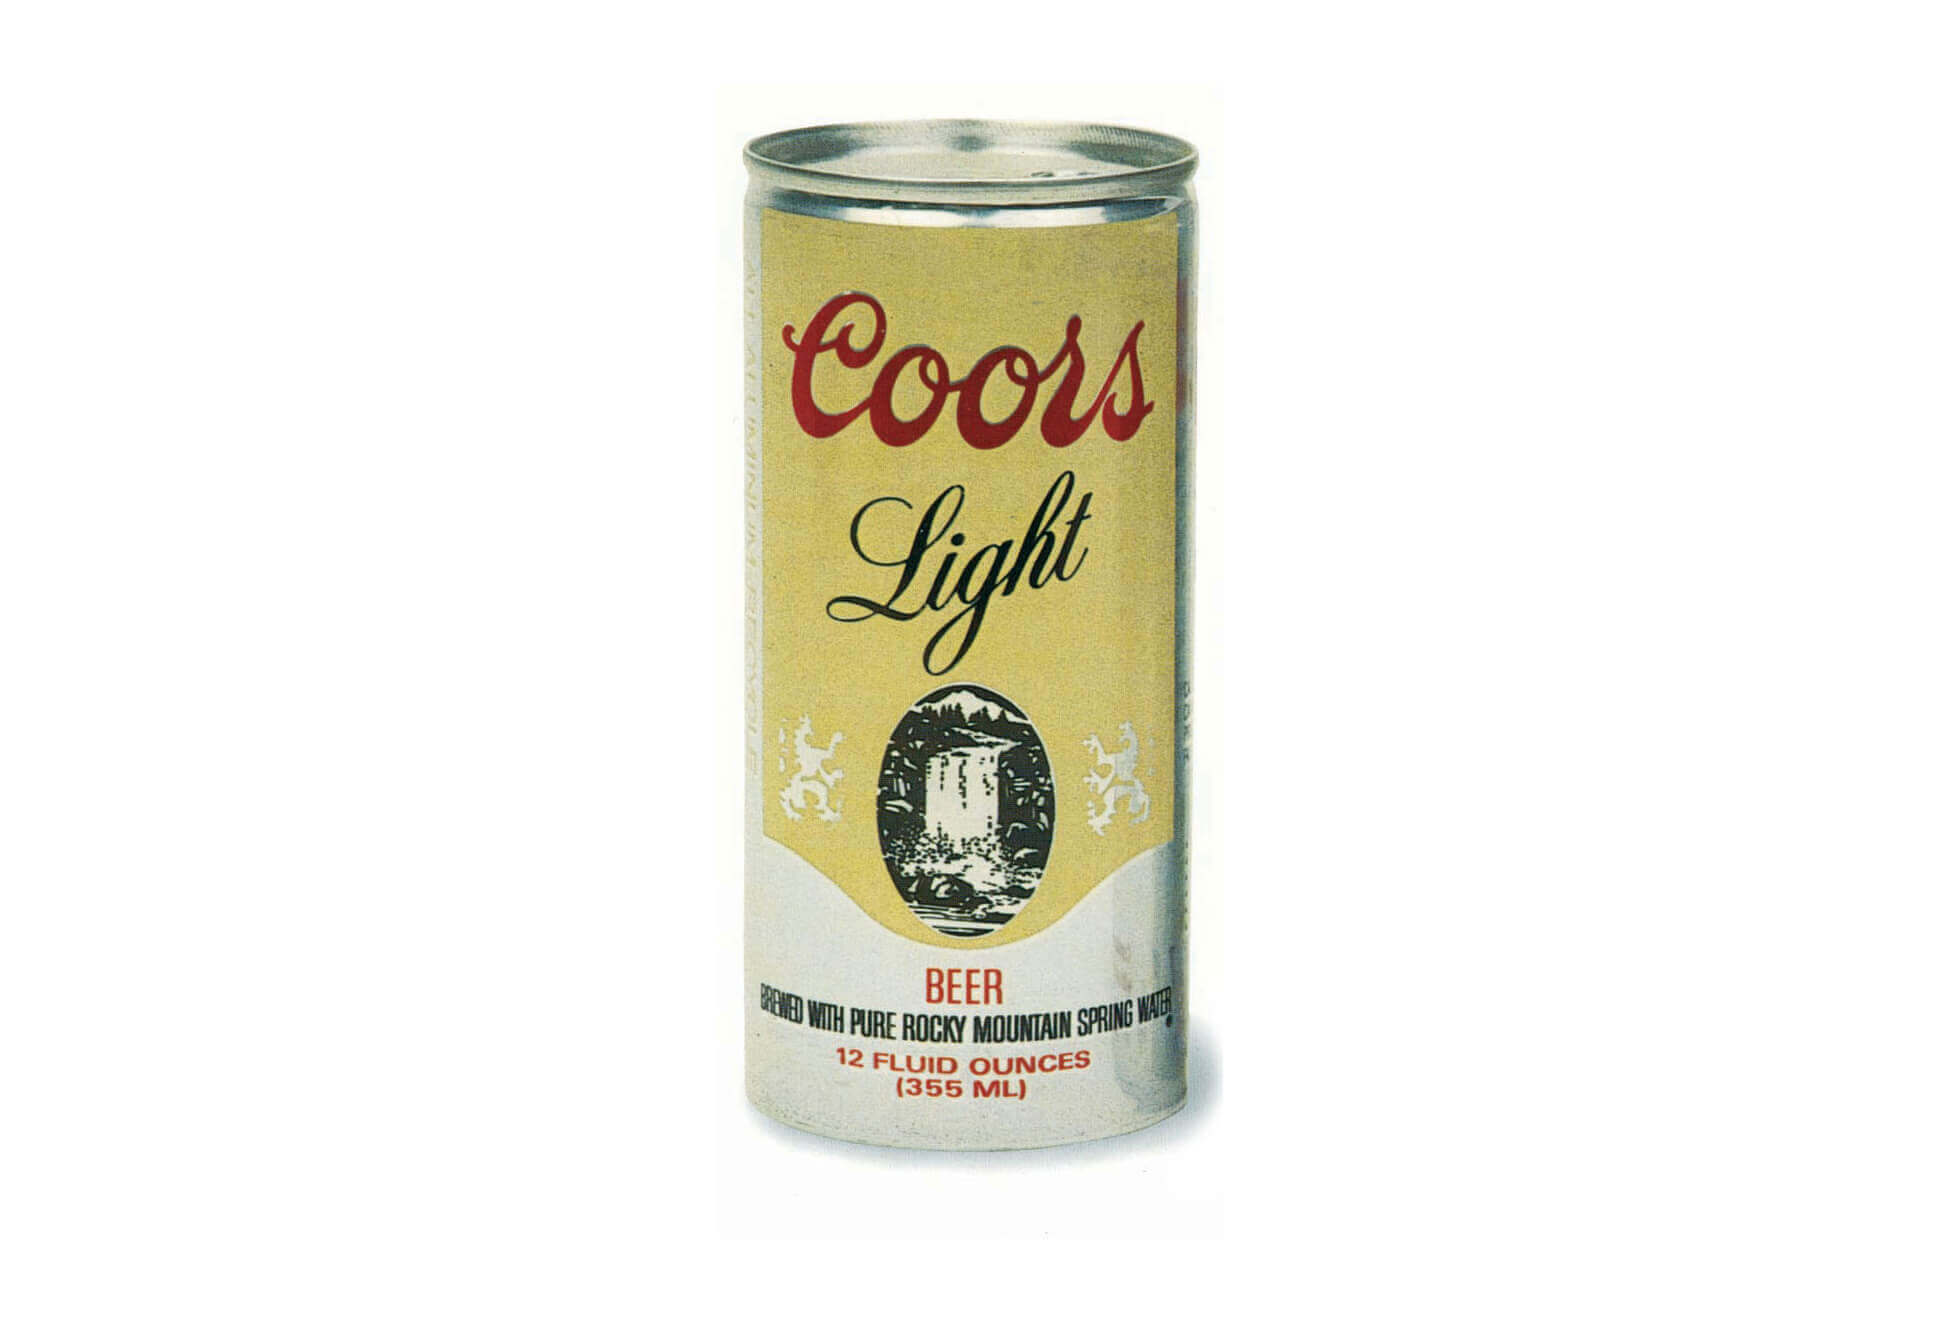 Coors Light Buff can